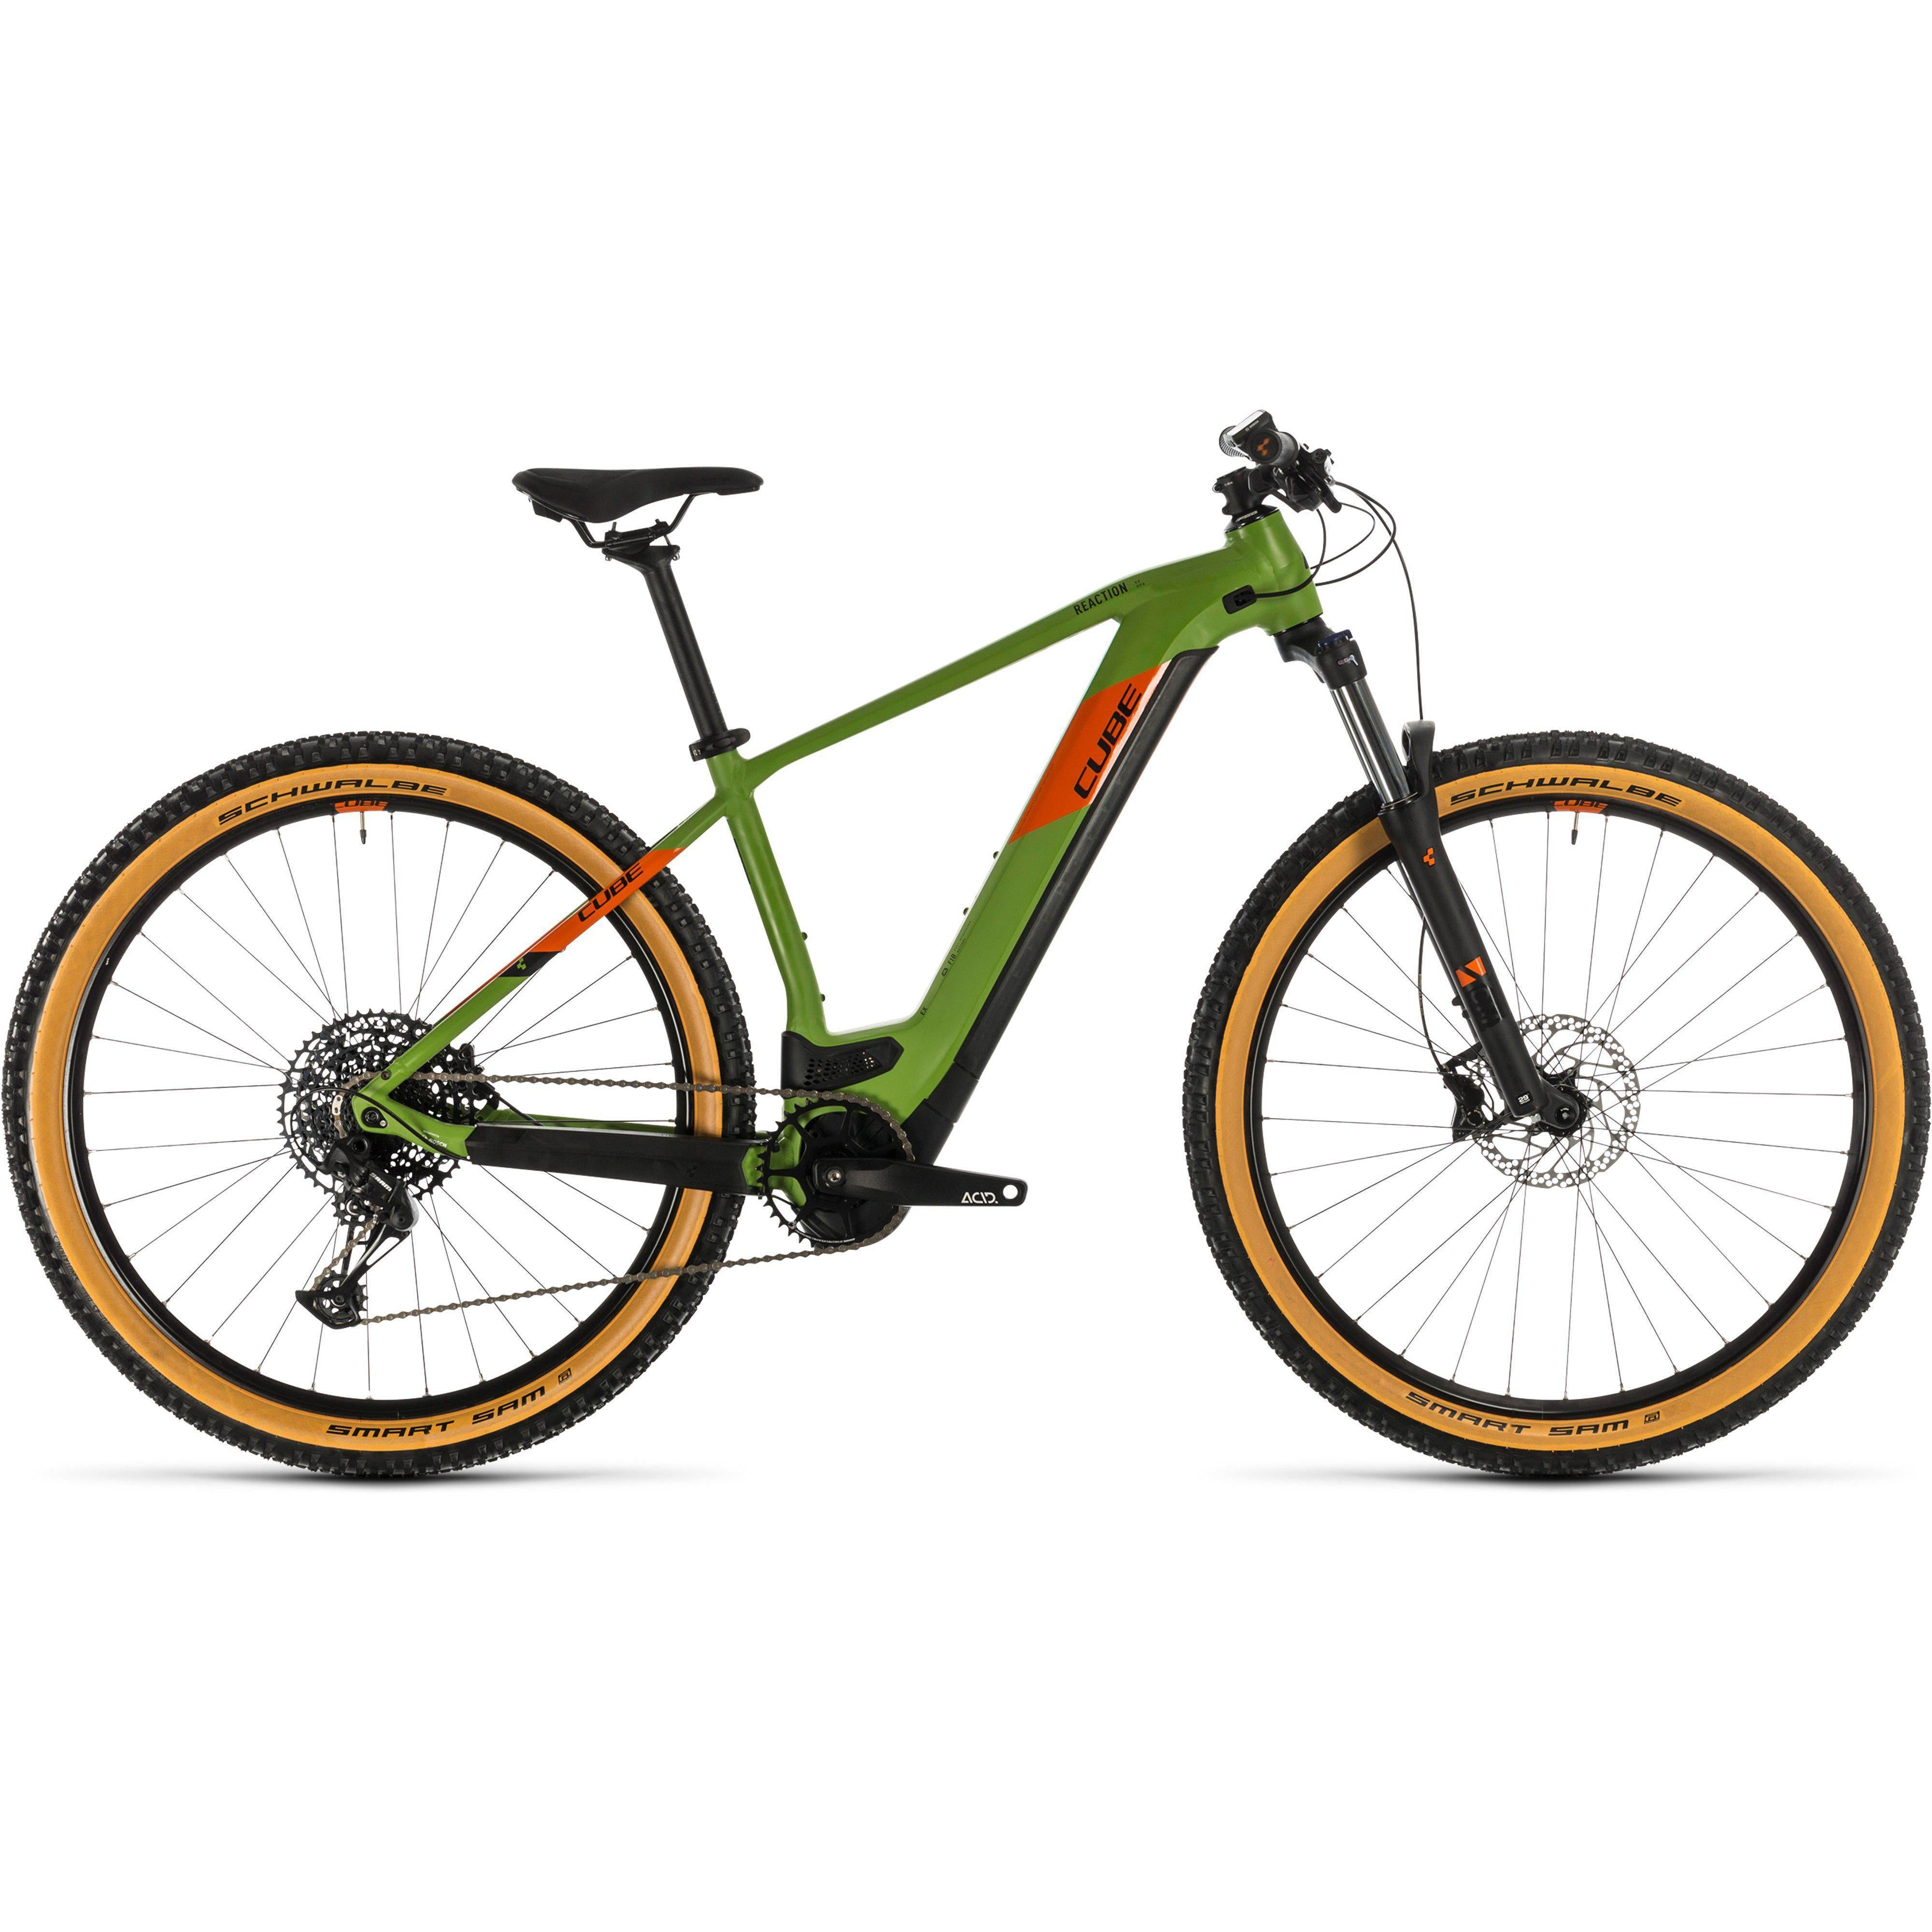 CUBE Reaction Hybrid EX 625 29 E-Bike 2021-Oregon E-Bikes